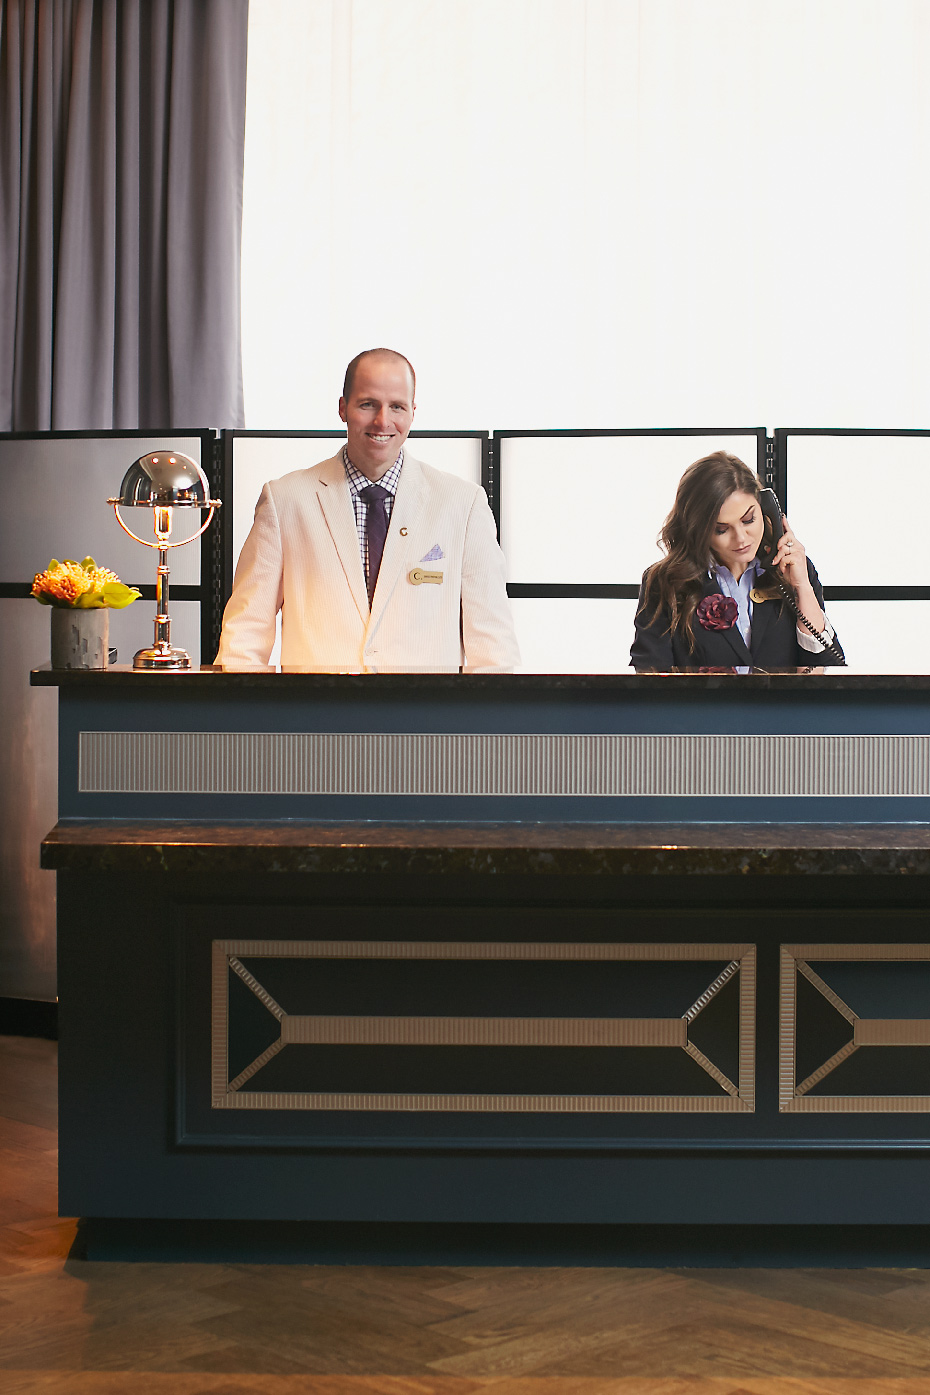 Stacey Van Berkel Photography I Reception desk at the Cardinal Hotel I Kimpton Hotel I Pet friendly hotel I Winston-Salem, North Carolina